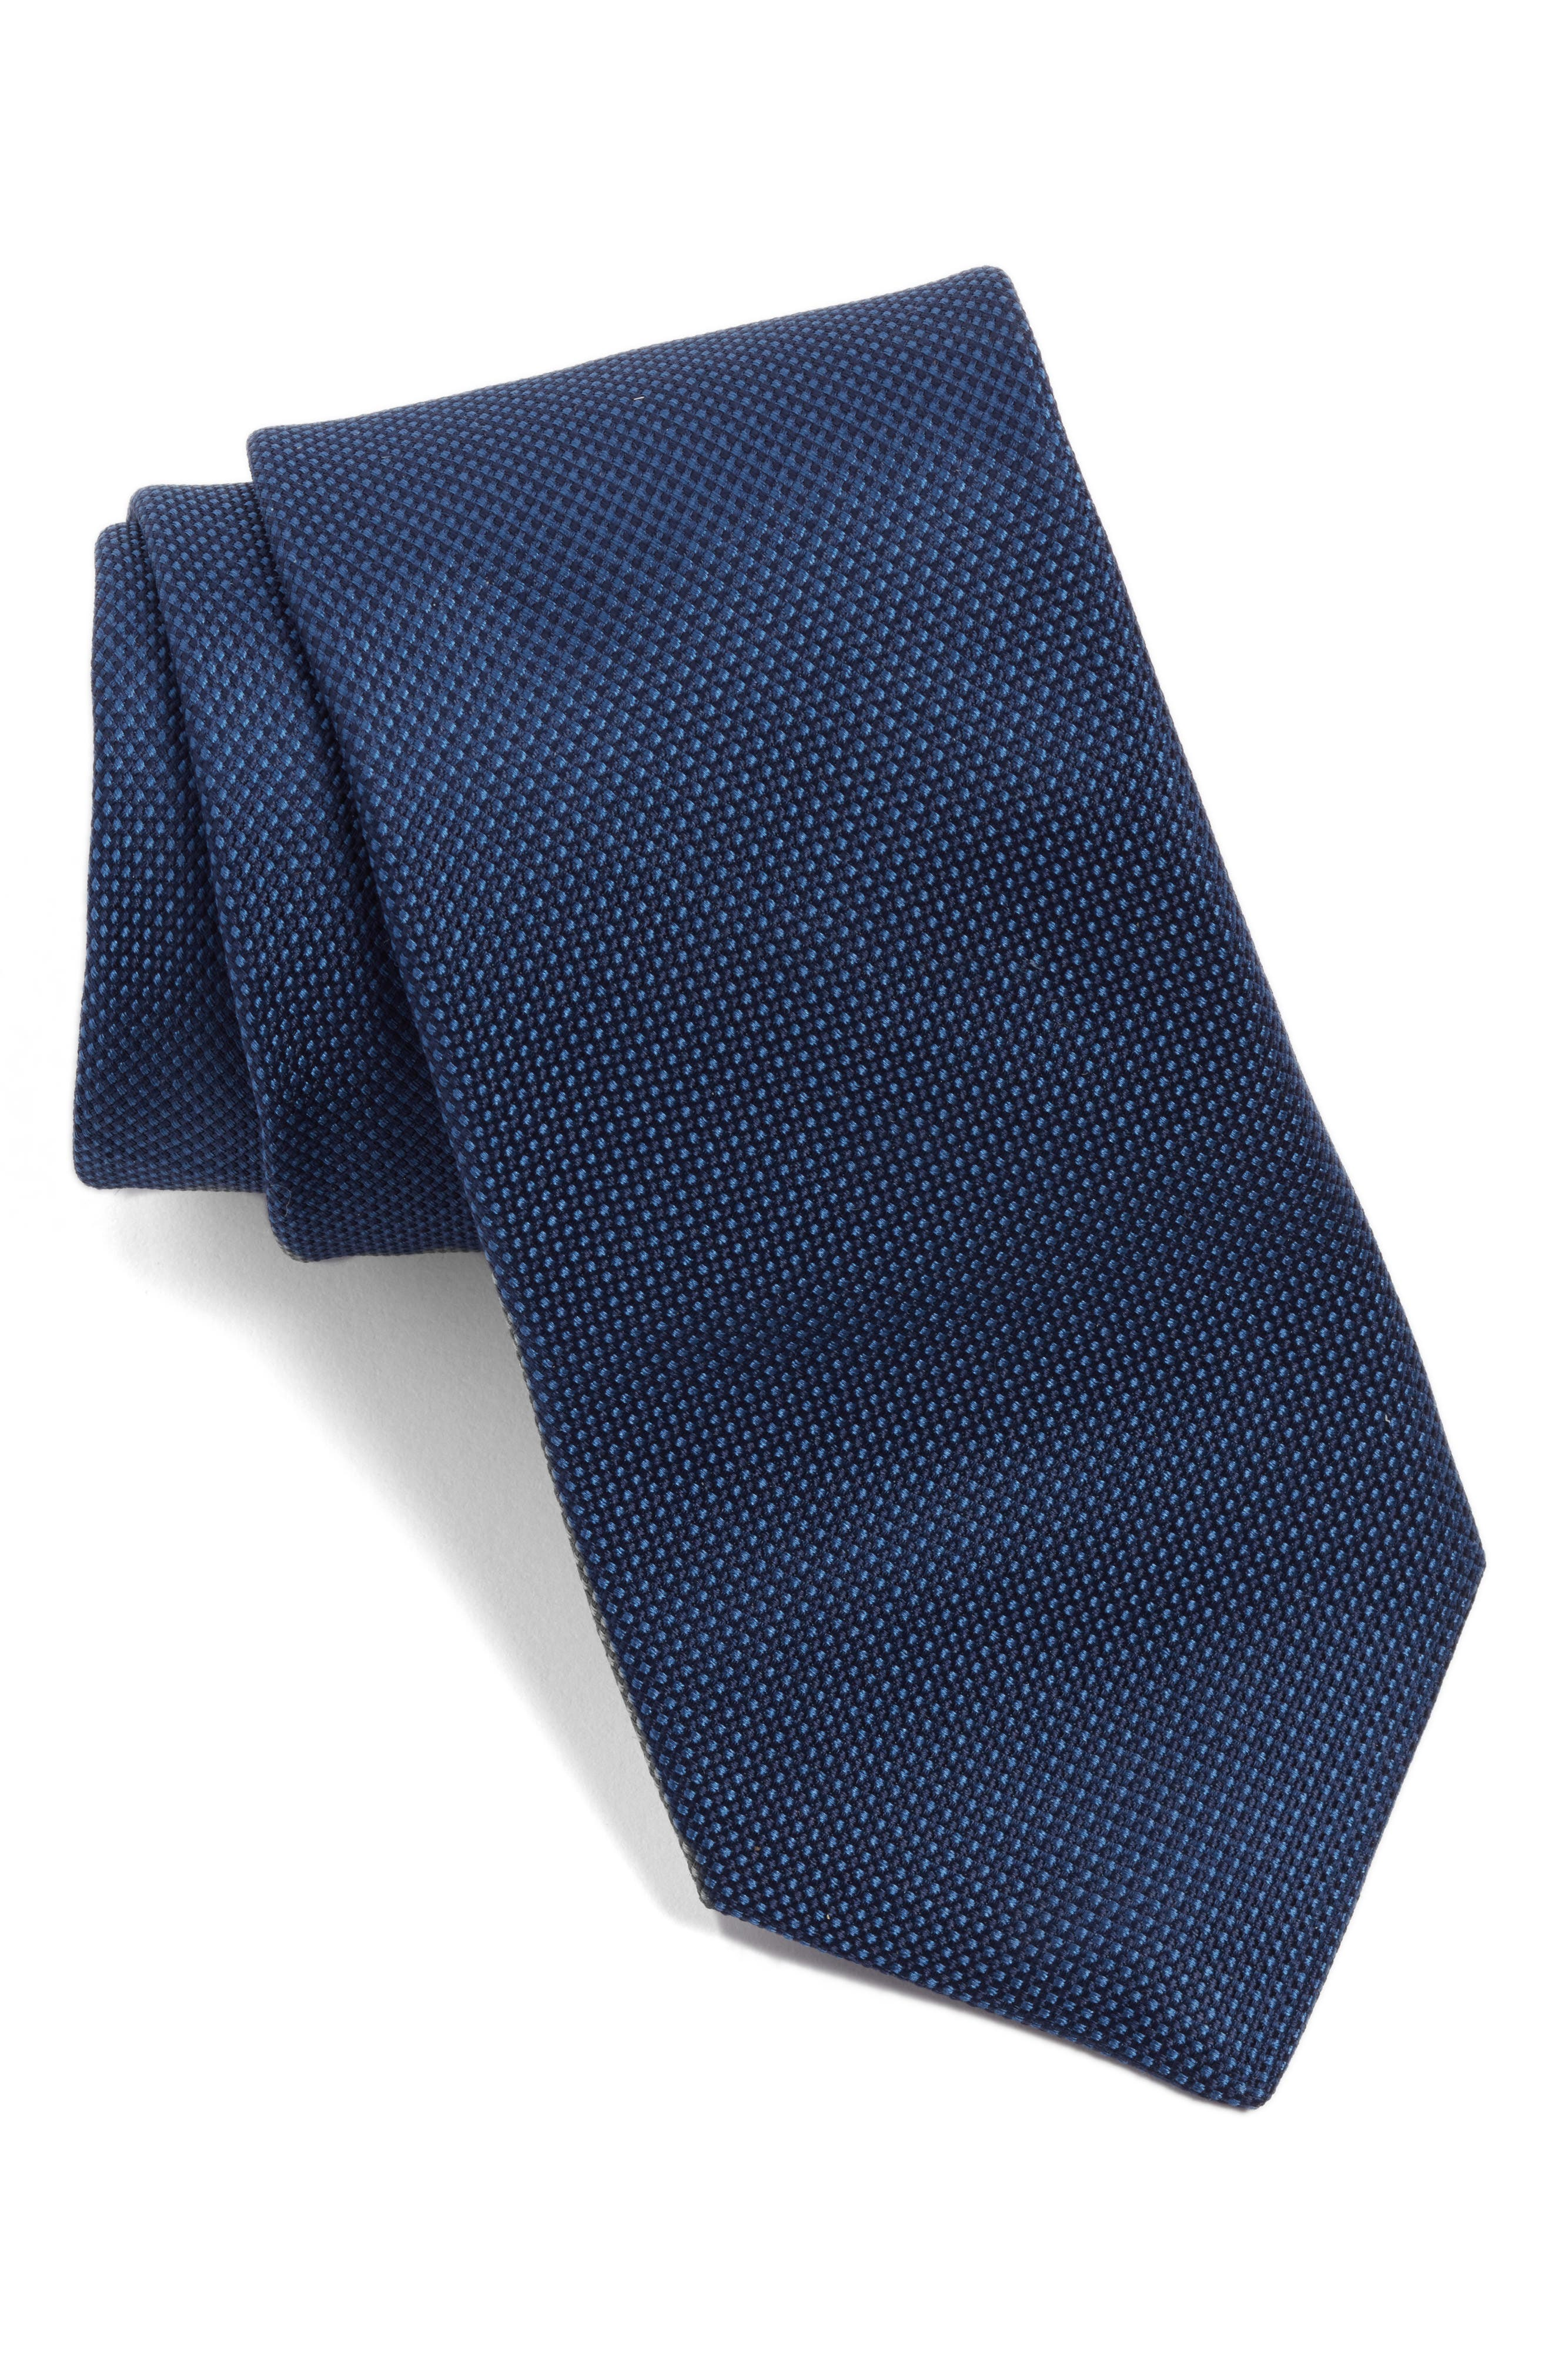 Alternate Image 1 Selected - Ted Baker London Solid Silk Tie